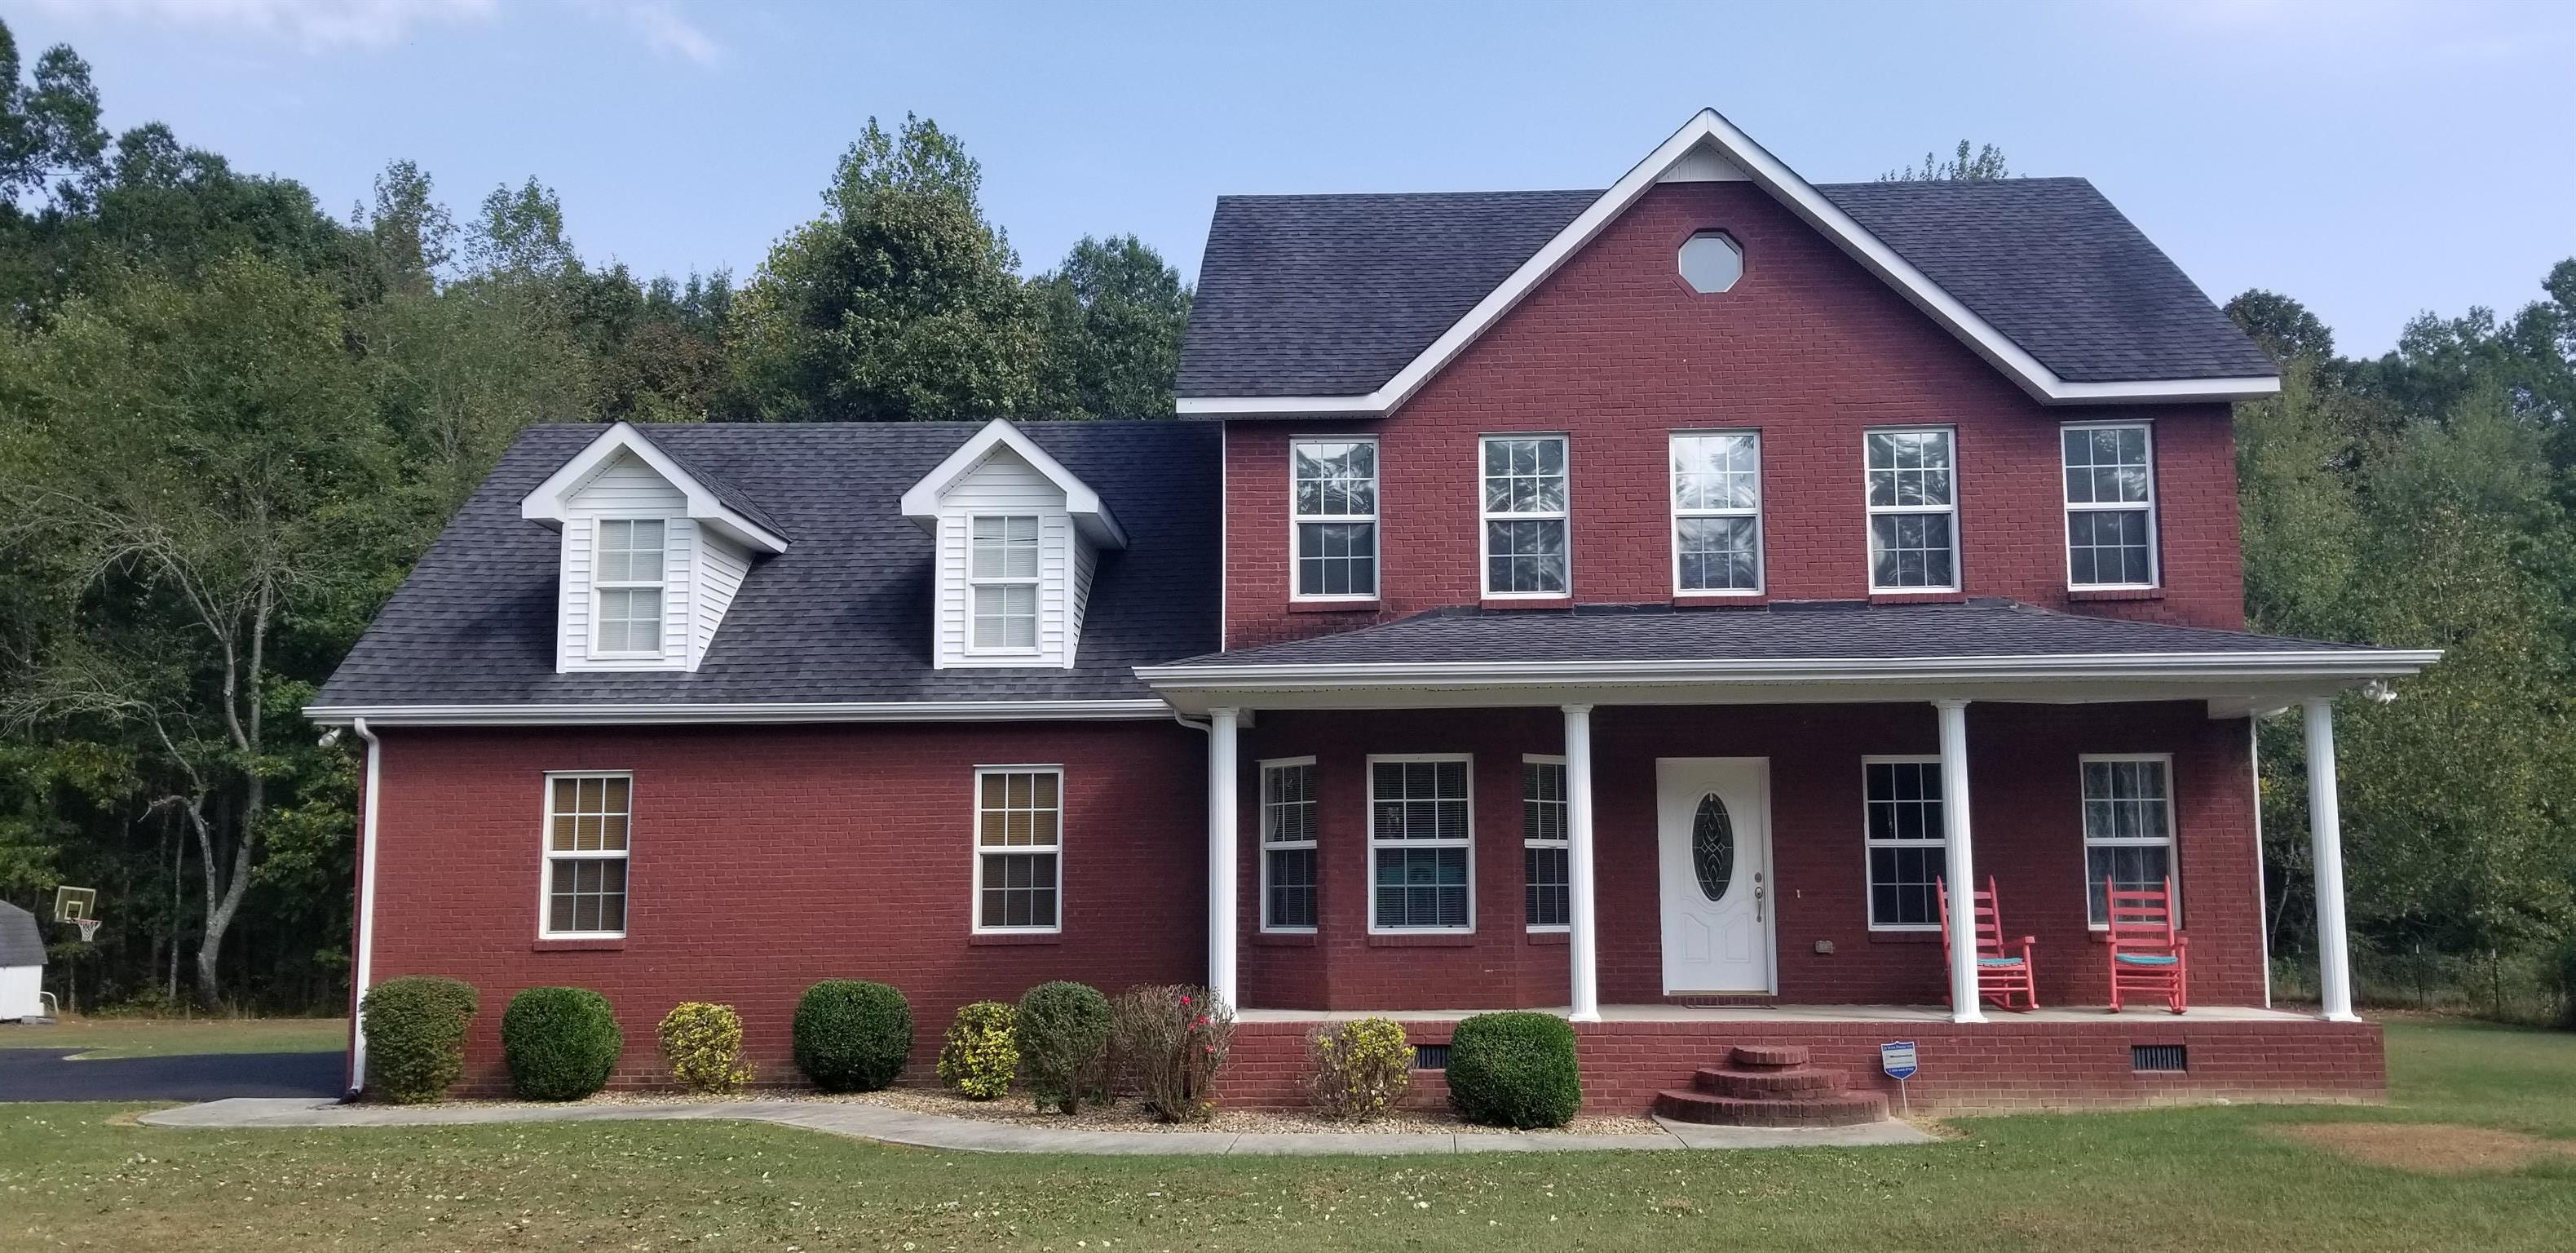 3046 Wayside Rd, Manchester, Tennessee